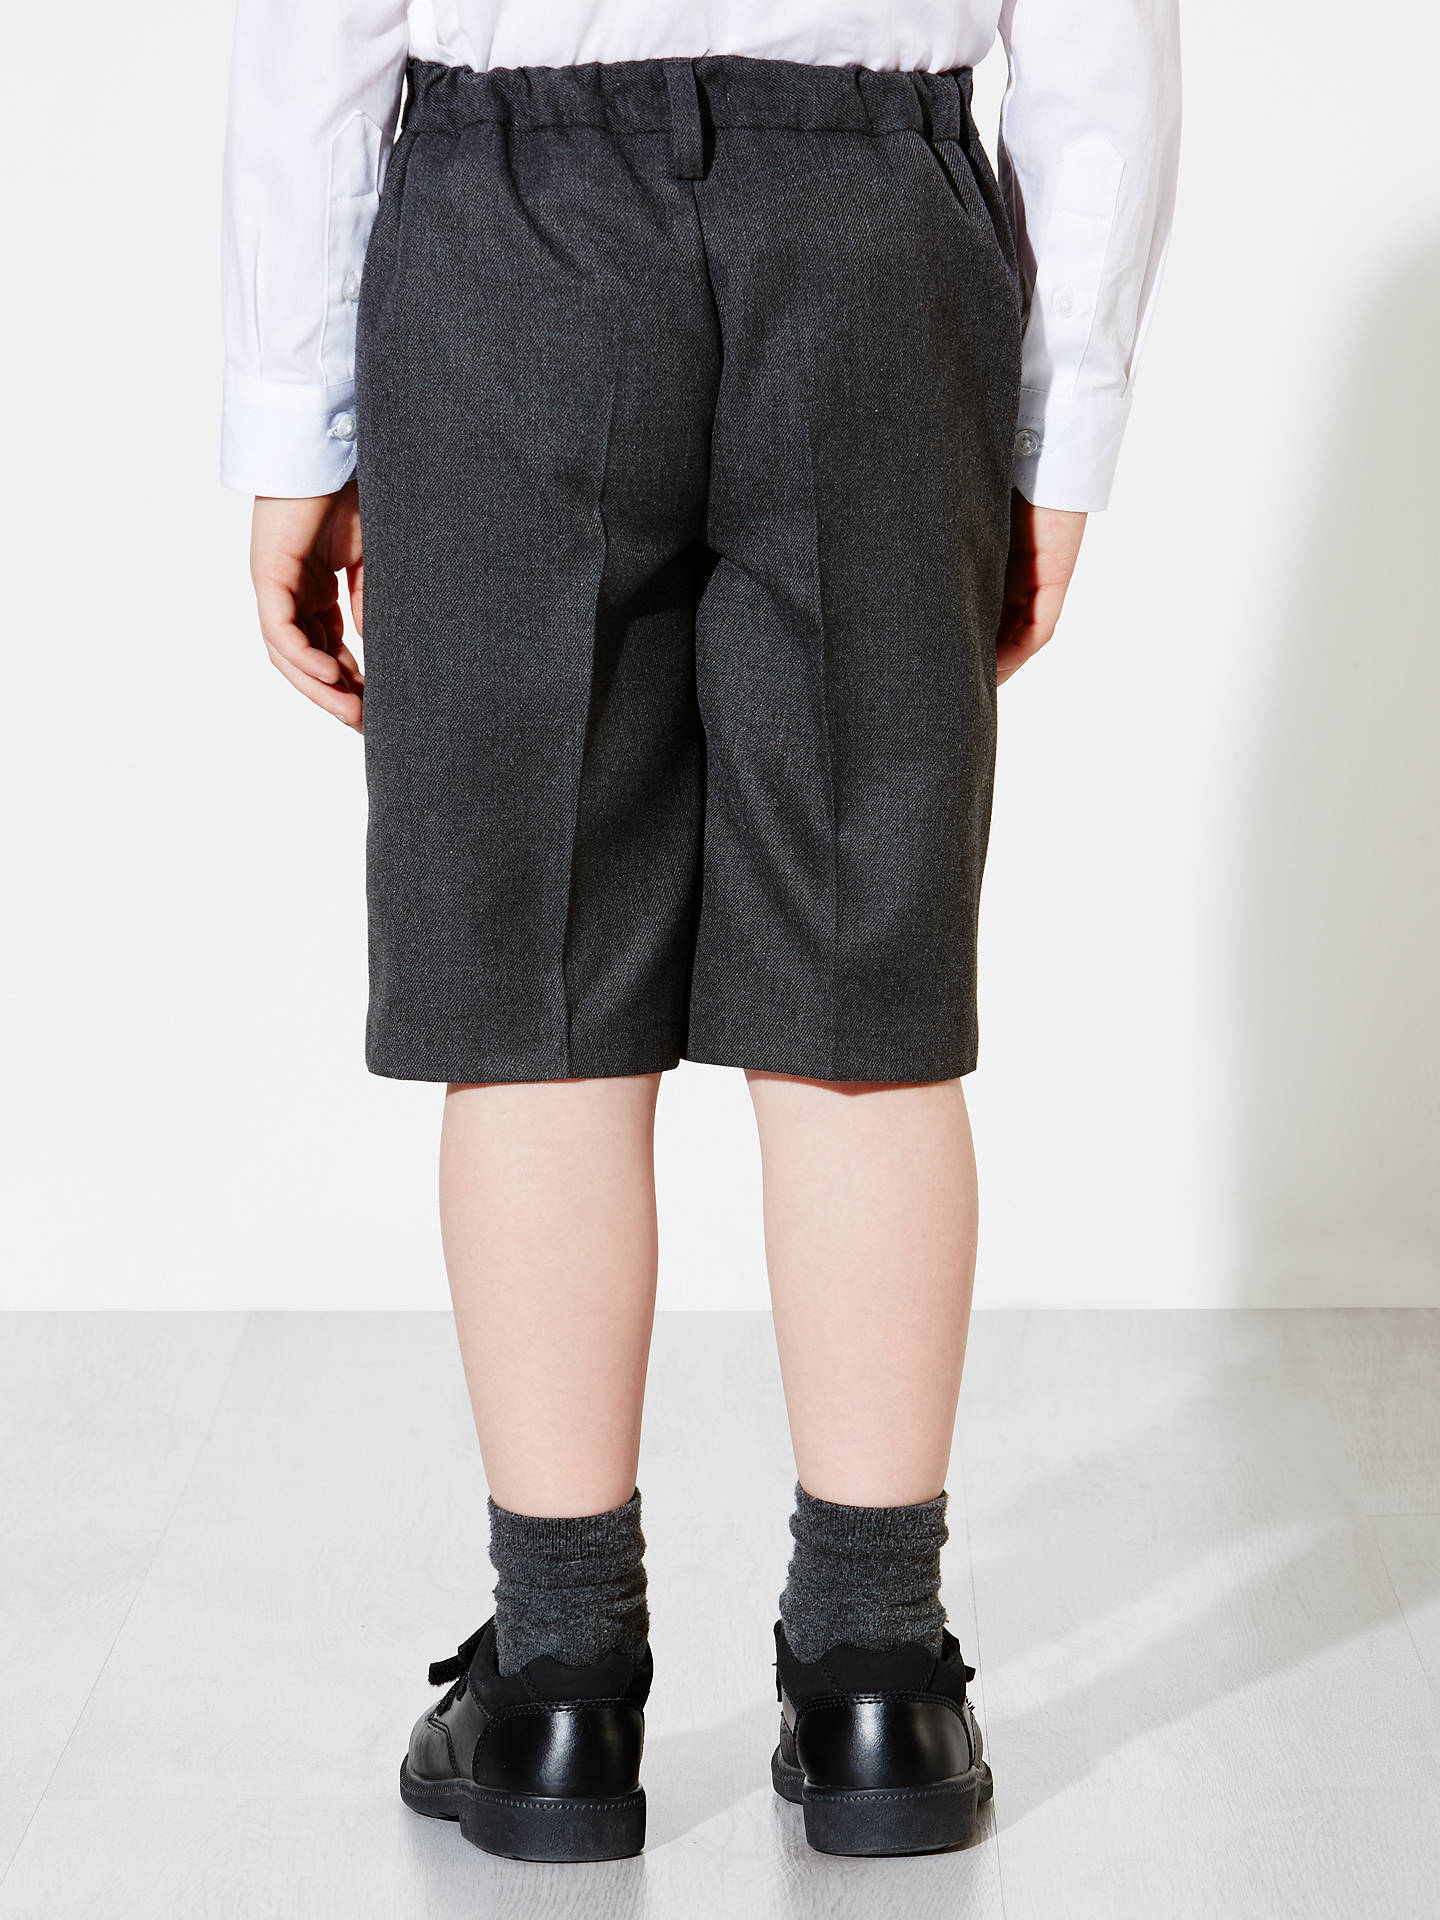 Buy John Lewis & Partners Boys' Bermuda Length School Shorts, Grey, 10 years Online at johnlewis.com